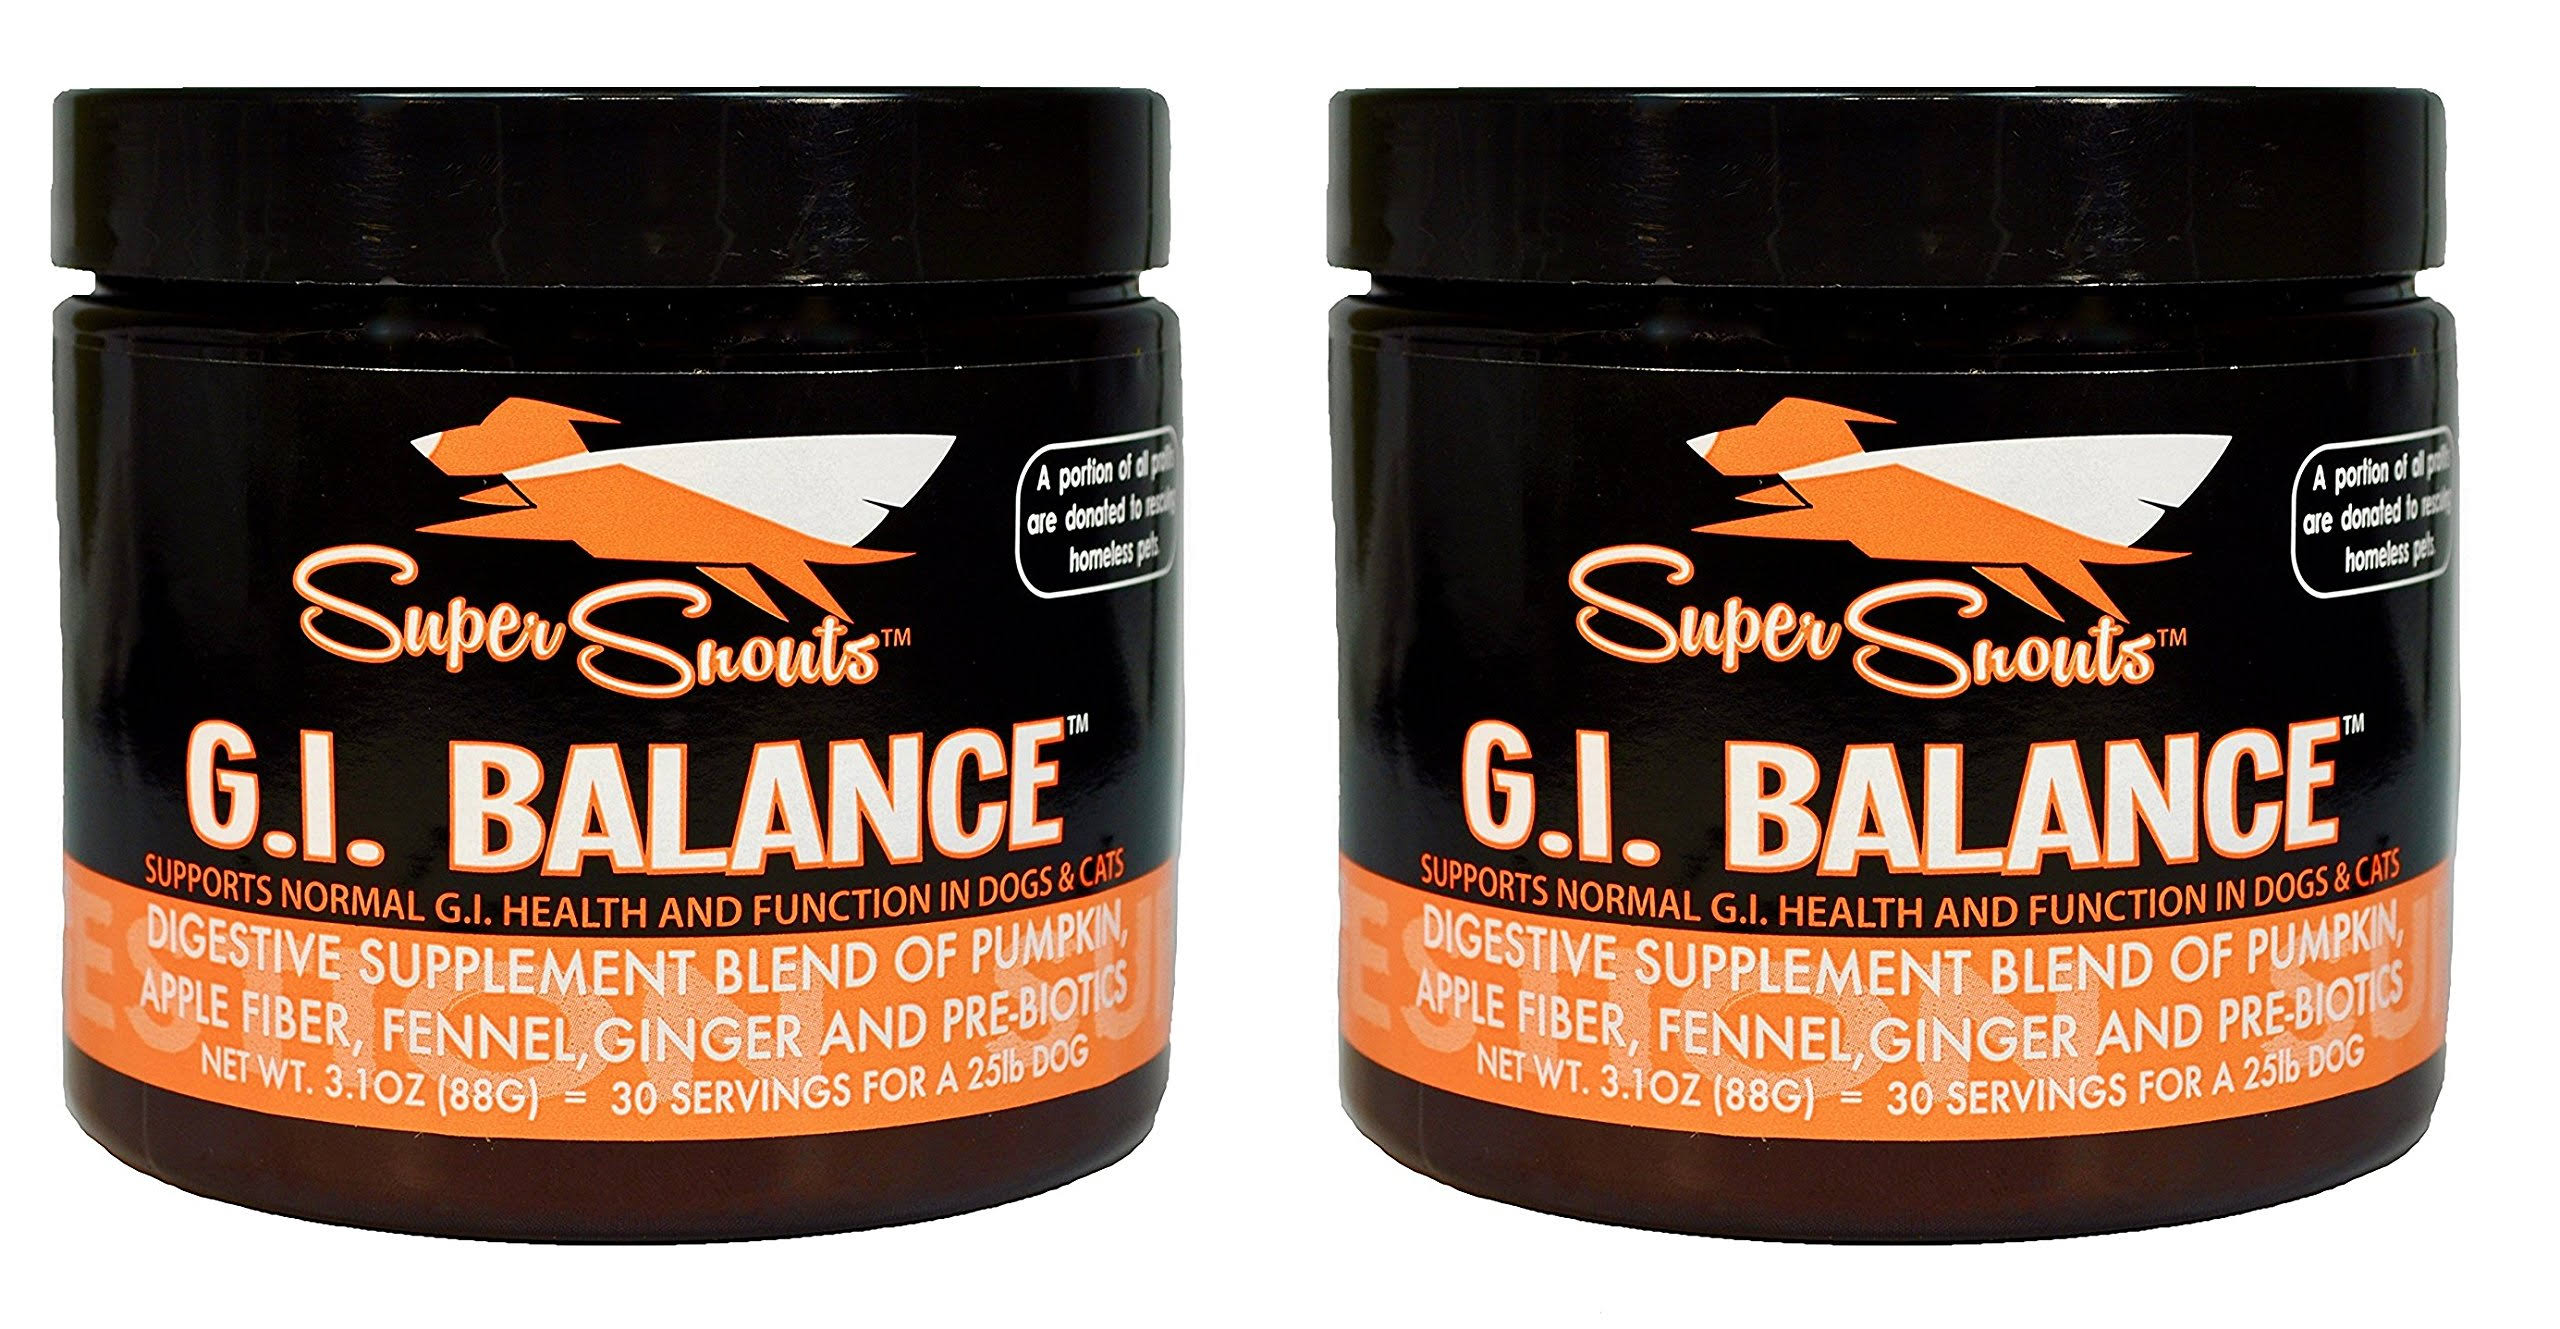 G.I. Balance Digestive Blend Supplement for Dogs and Cats - 88g